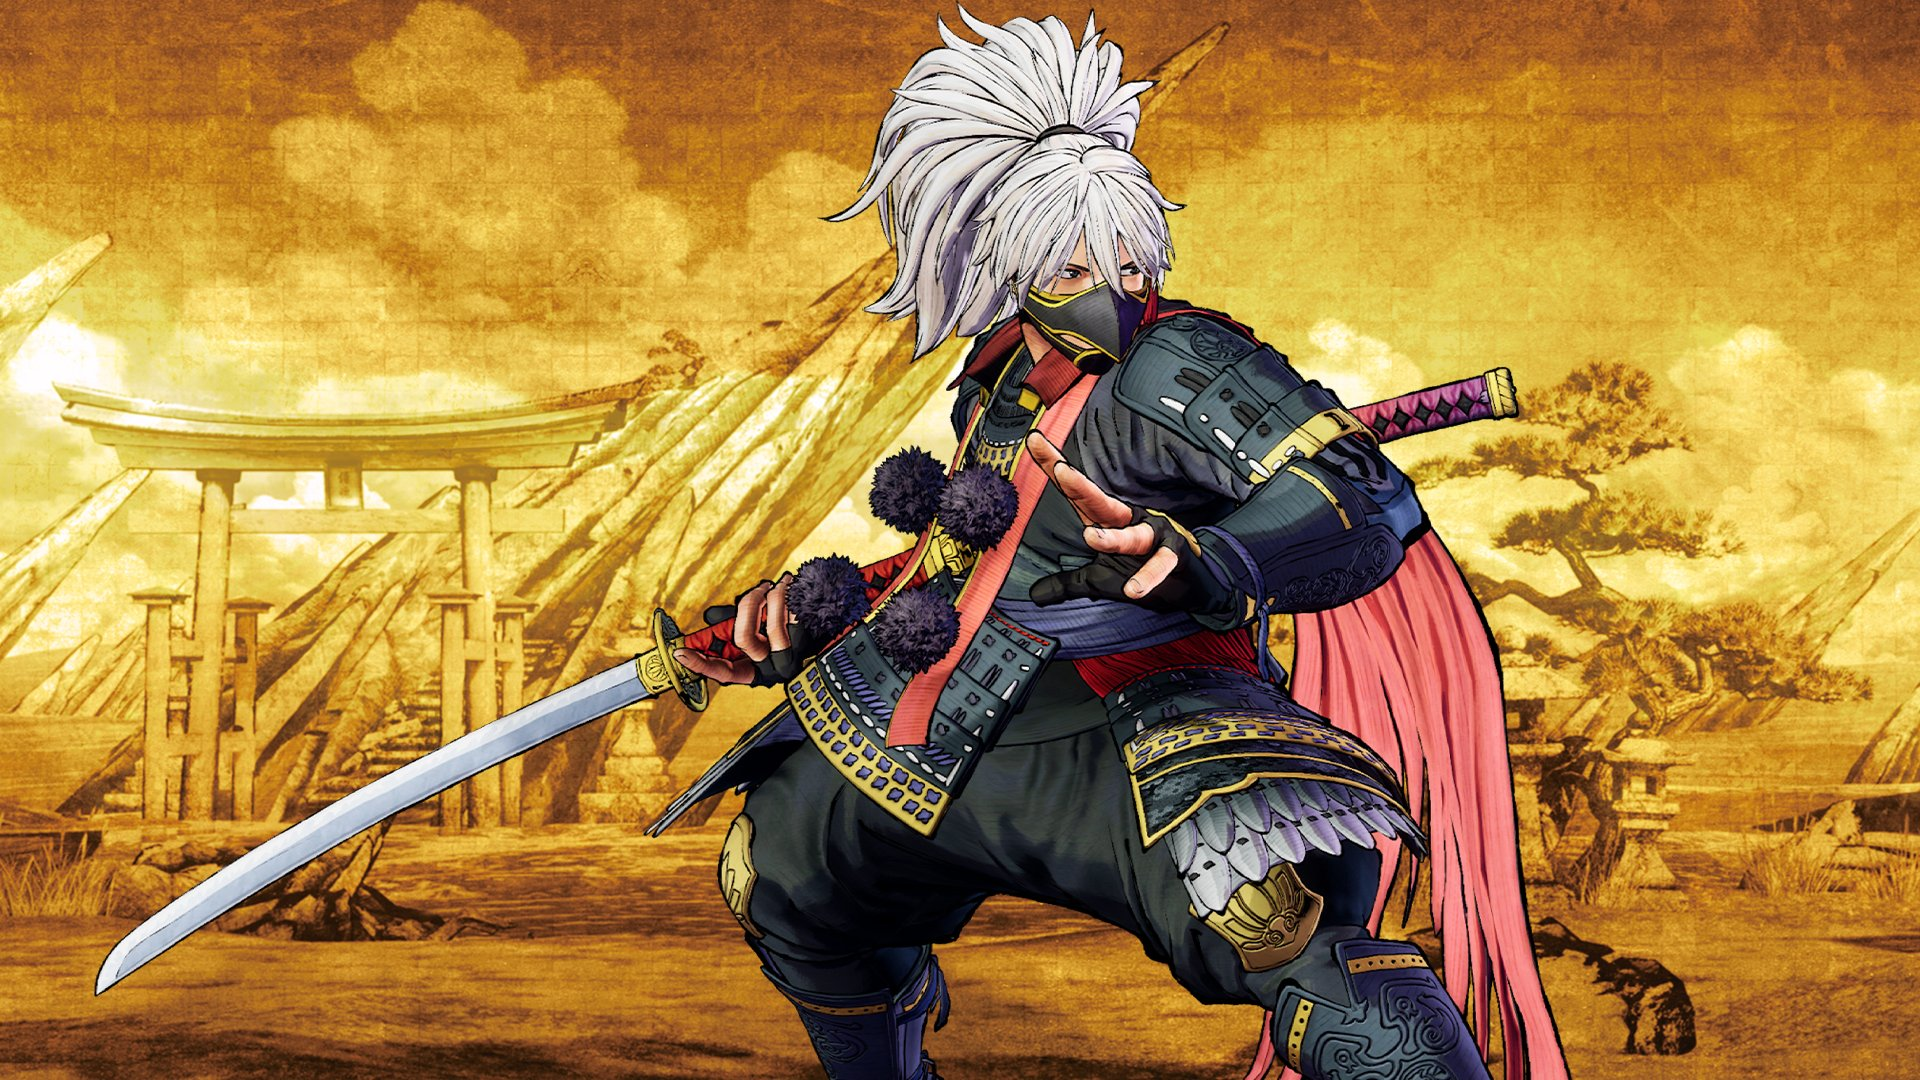 Review Samurai Shodown Is The Revival The Series Needed But Issues Dull Its Blade Bloody Disgusting